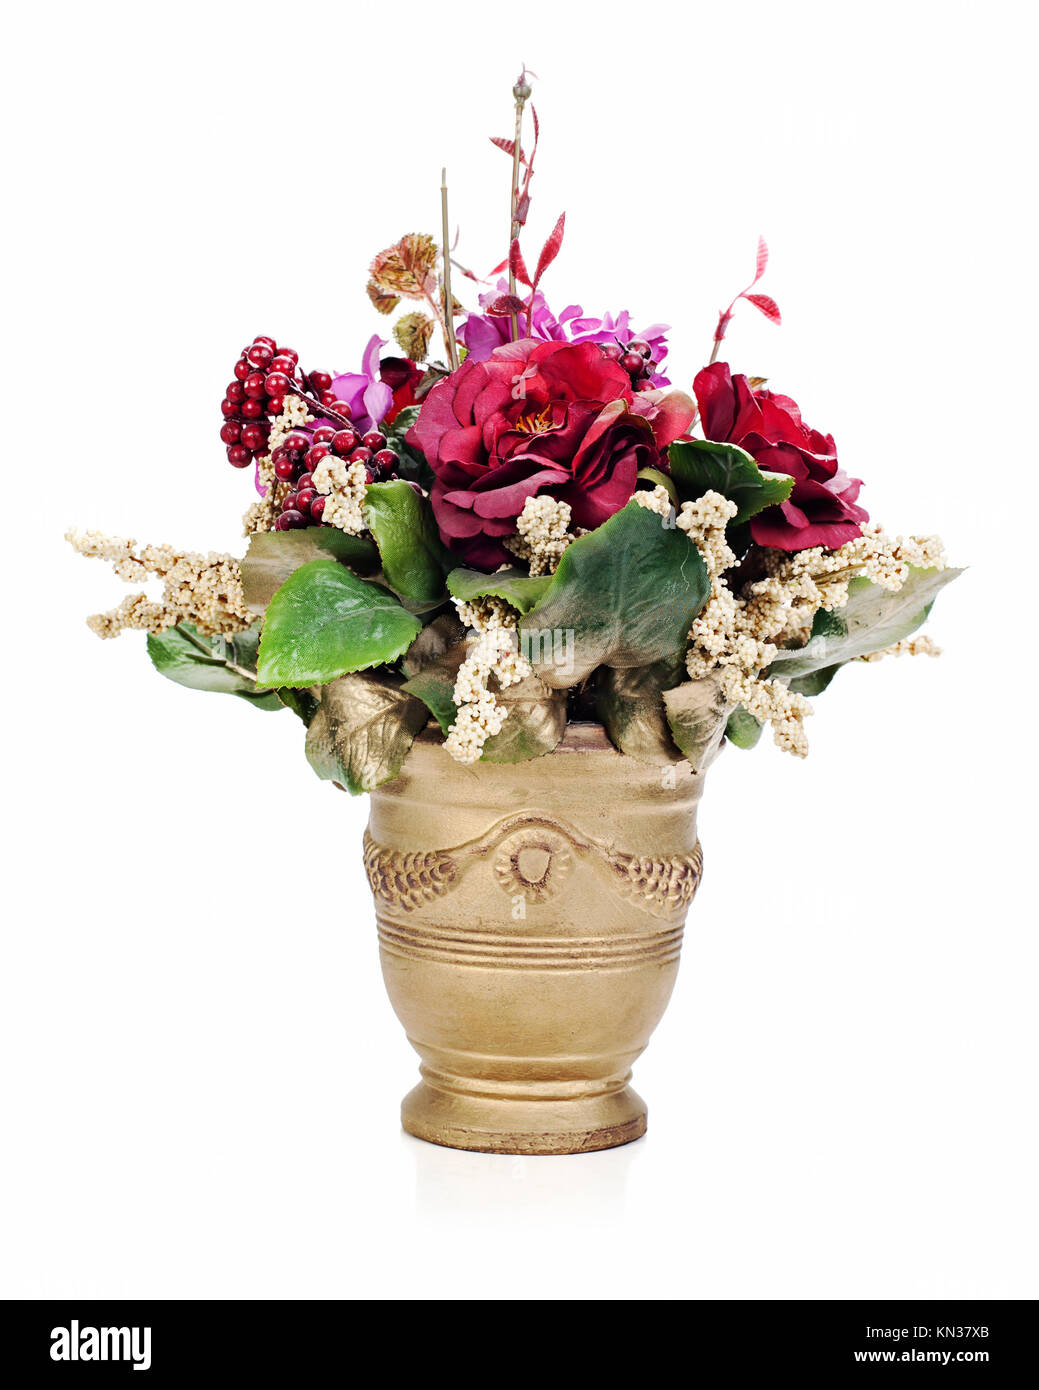 Colorful Flower Bouquet From Artificial Flowers Arrangement Stock Photo Alamy